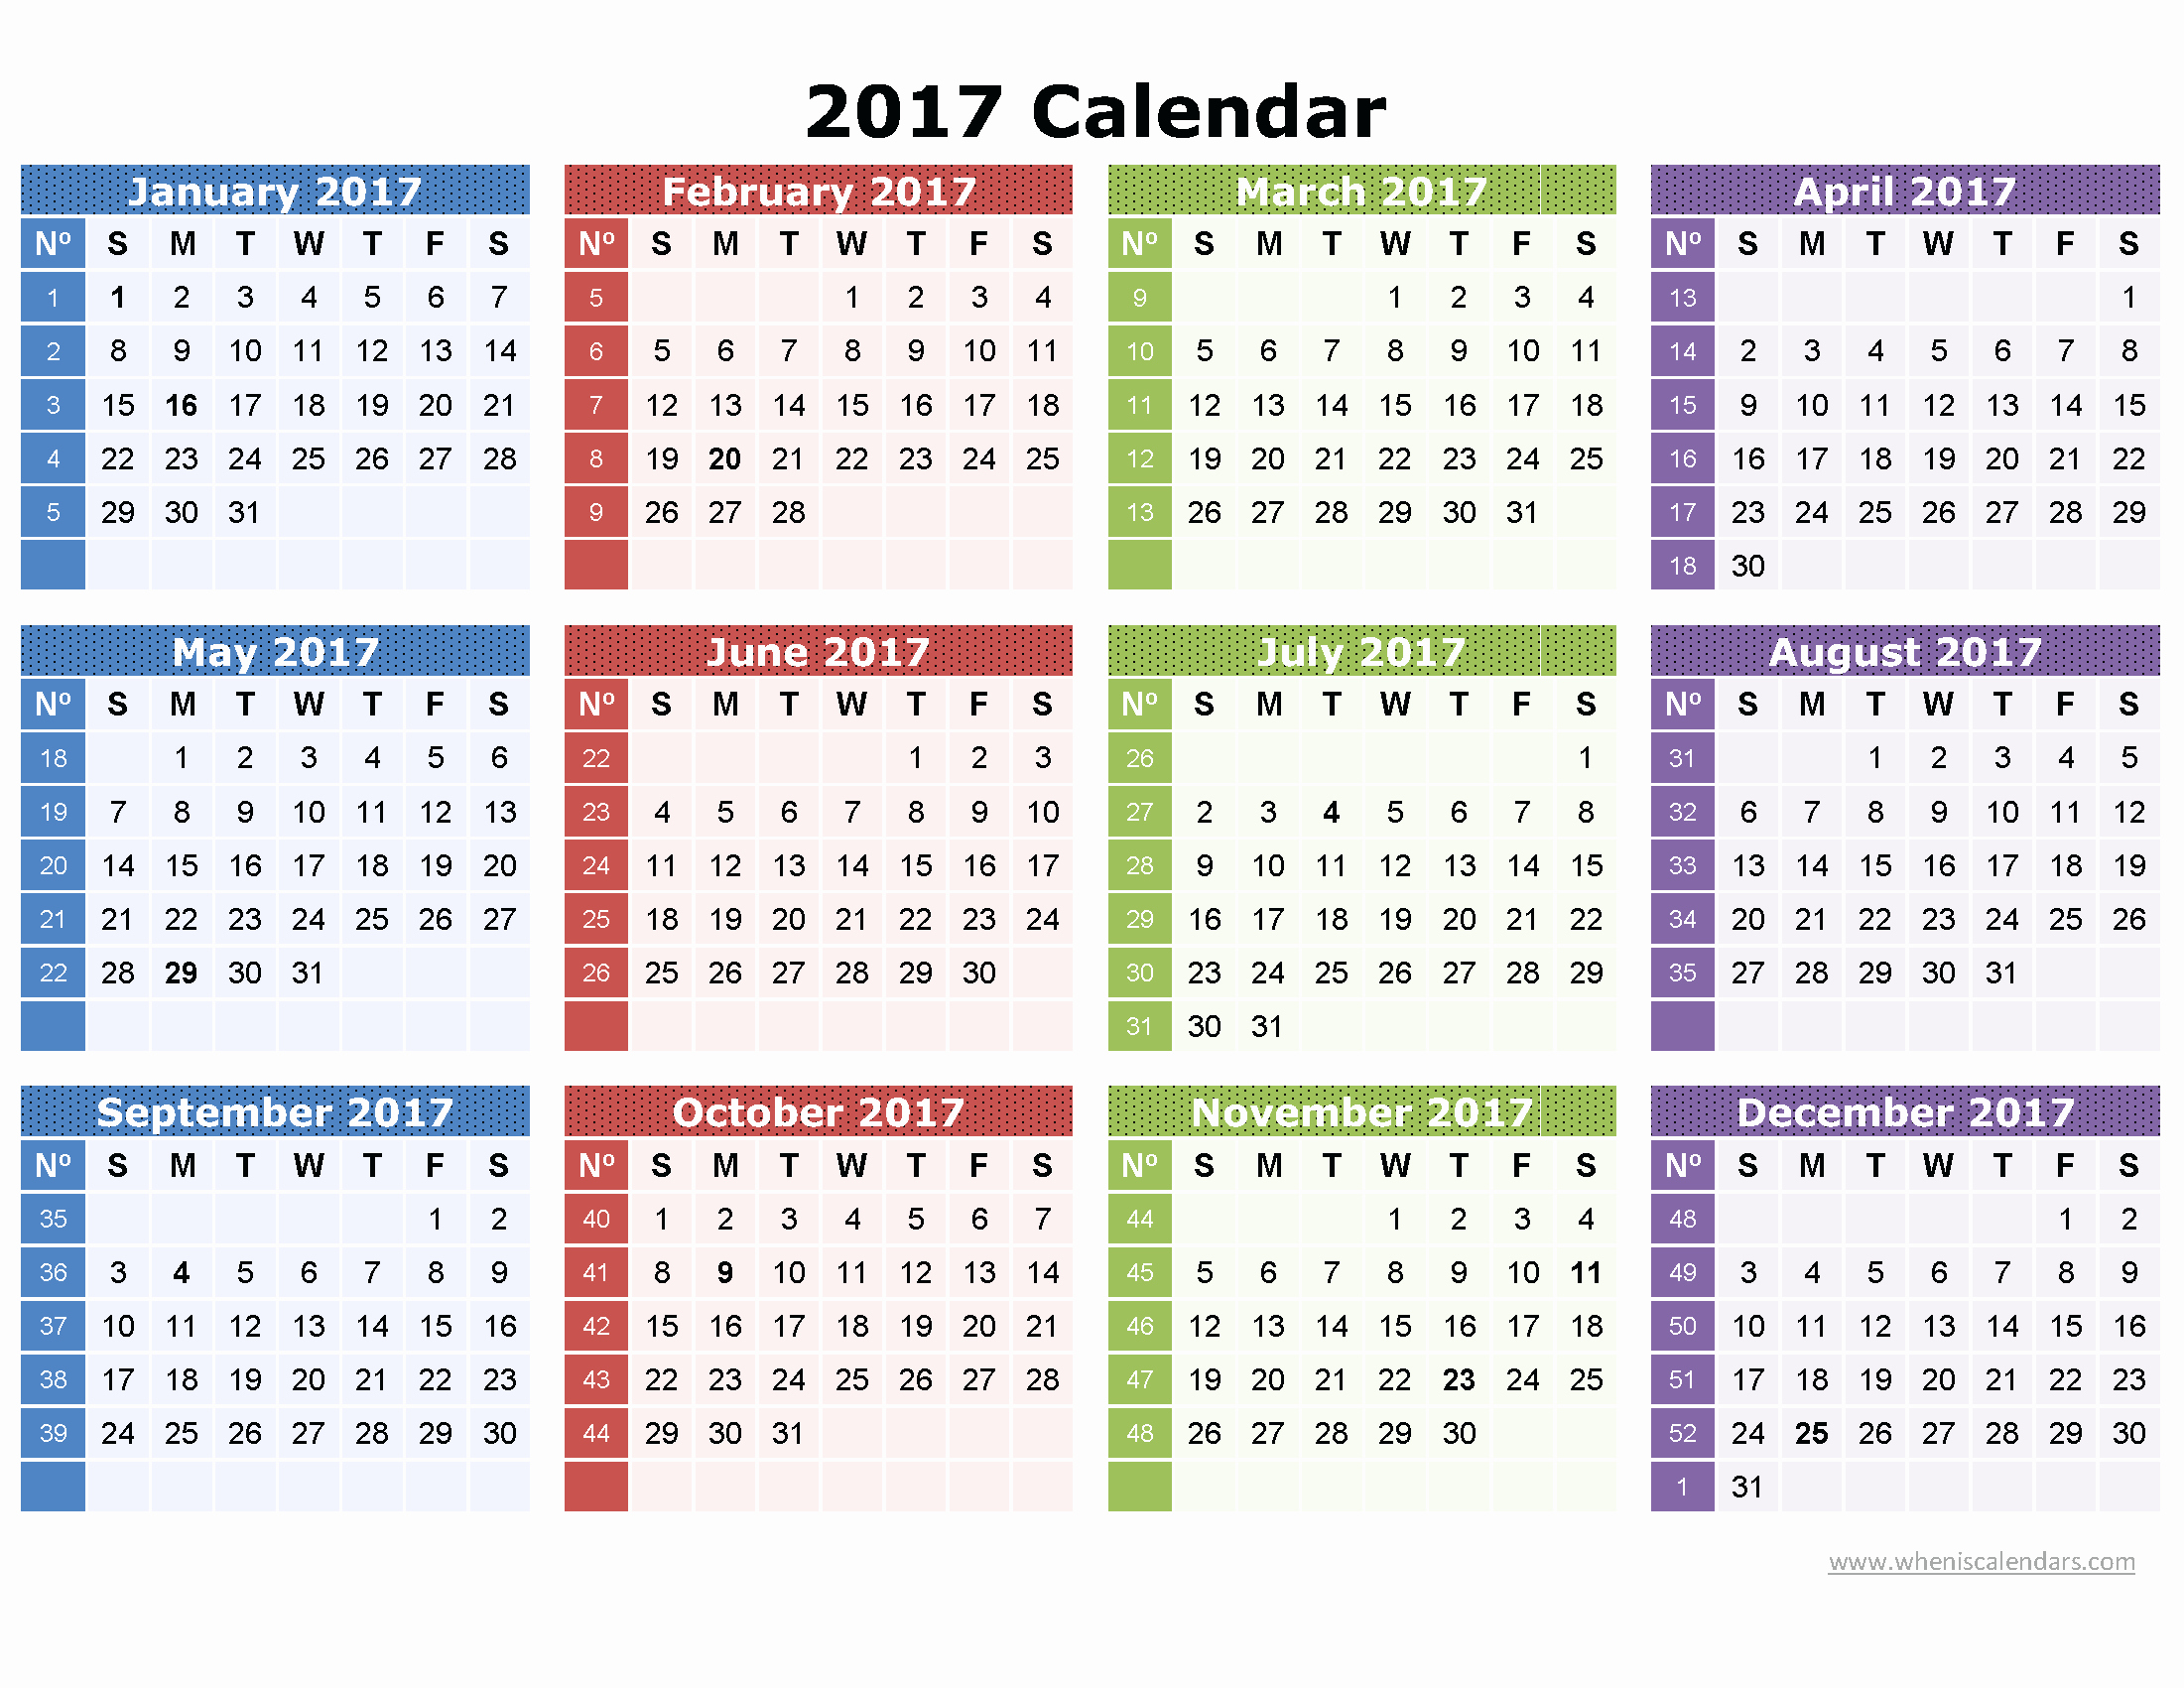 Free 2017 Yearly Calendar Template Best Of 2017 Year Calendar Wallpaper Download Free 2017 Calendar